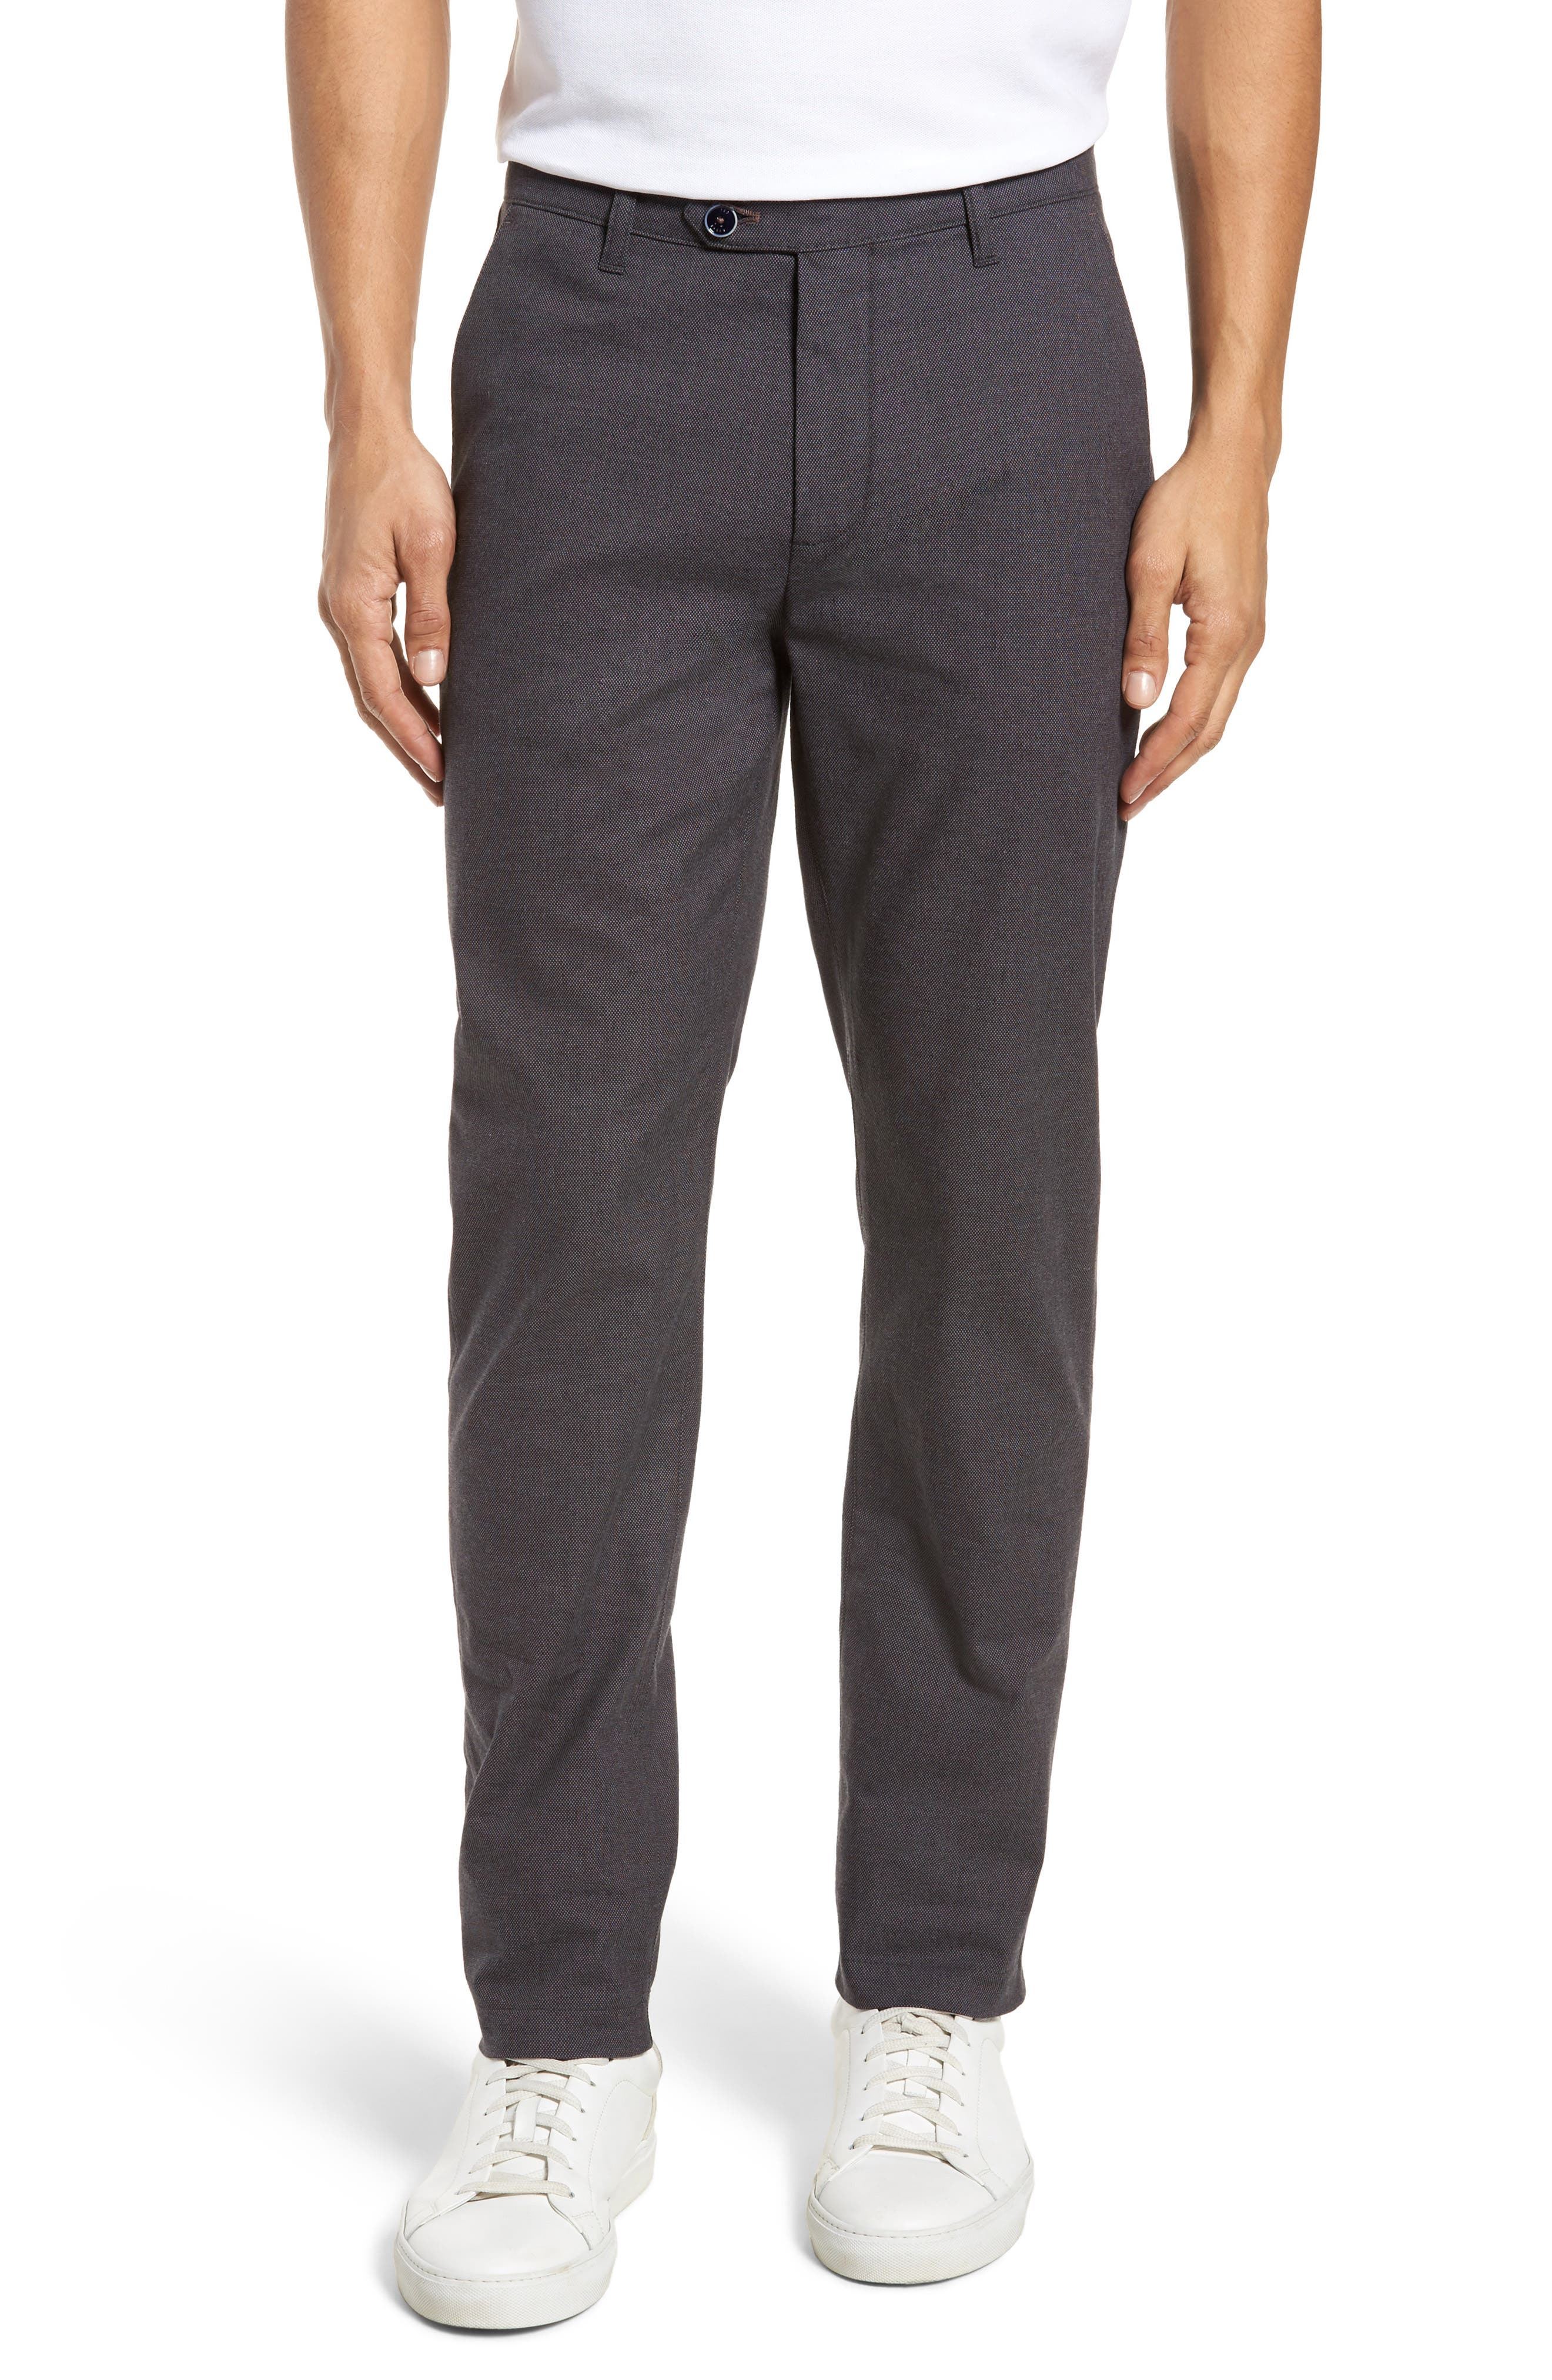 Holldet Flat Front Stretch Solid Cotton Pants,                         Main,                         color, 020